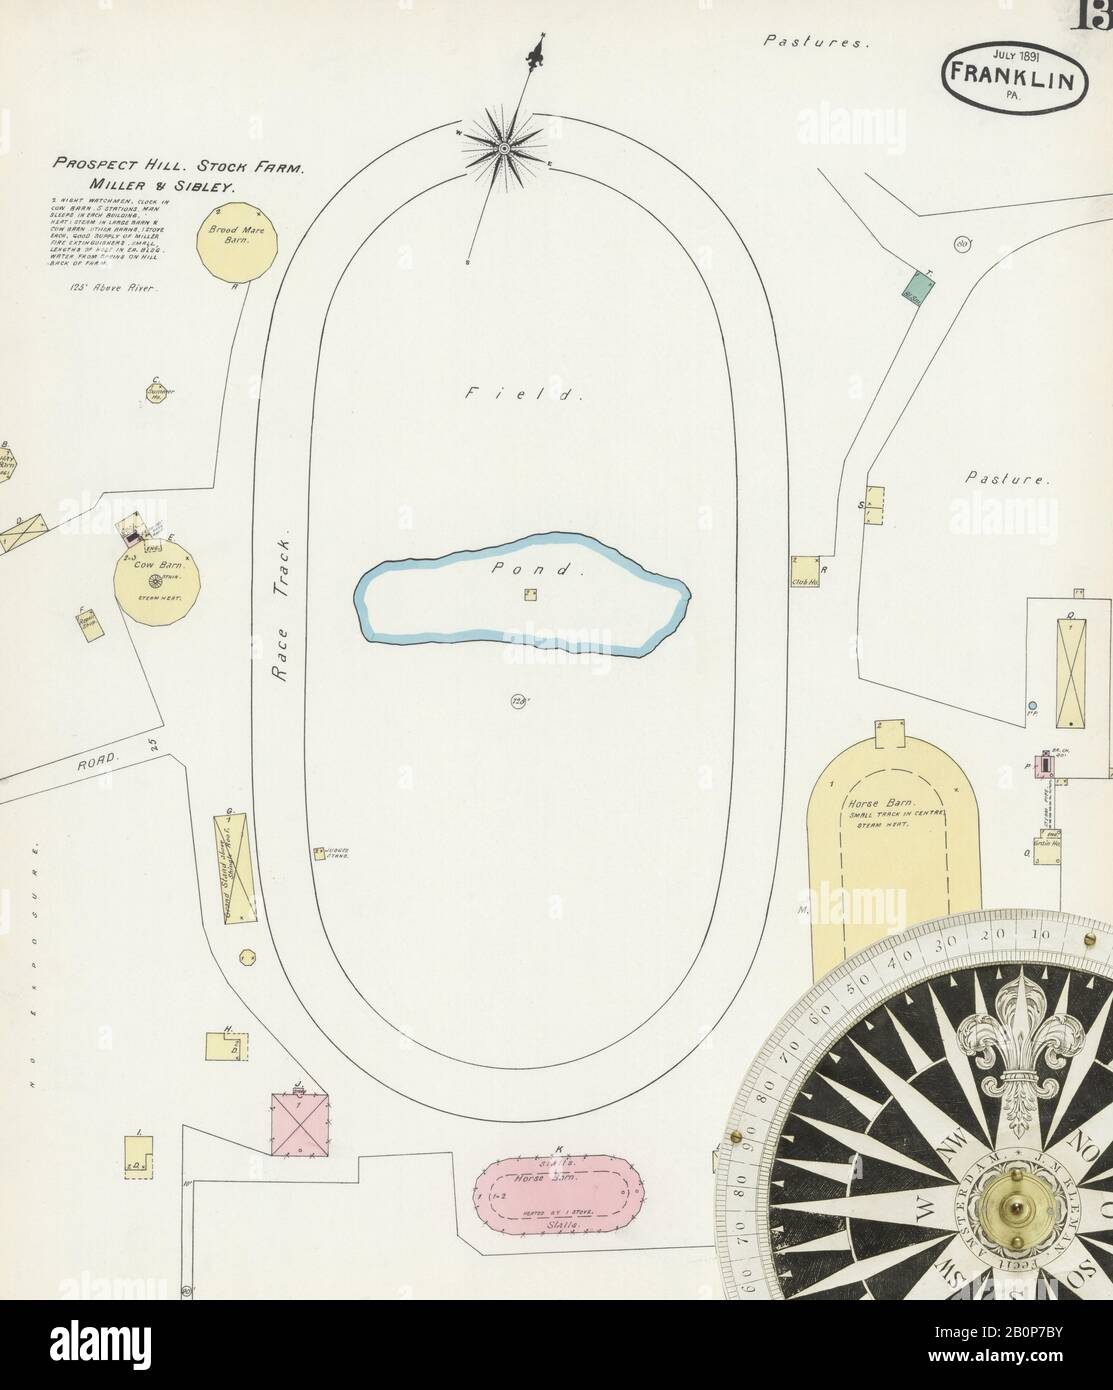 Image 13 of Sanborn Fire Insurance Map from Franklin, Venango County, Pennsylvania. Aug 1891. 13 Sheet(s), America, street map with a Nineteenth Century compass Stock Photo